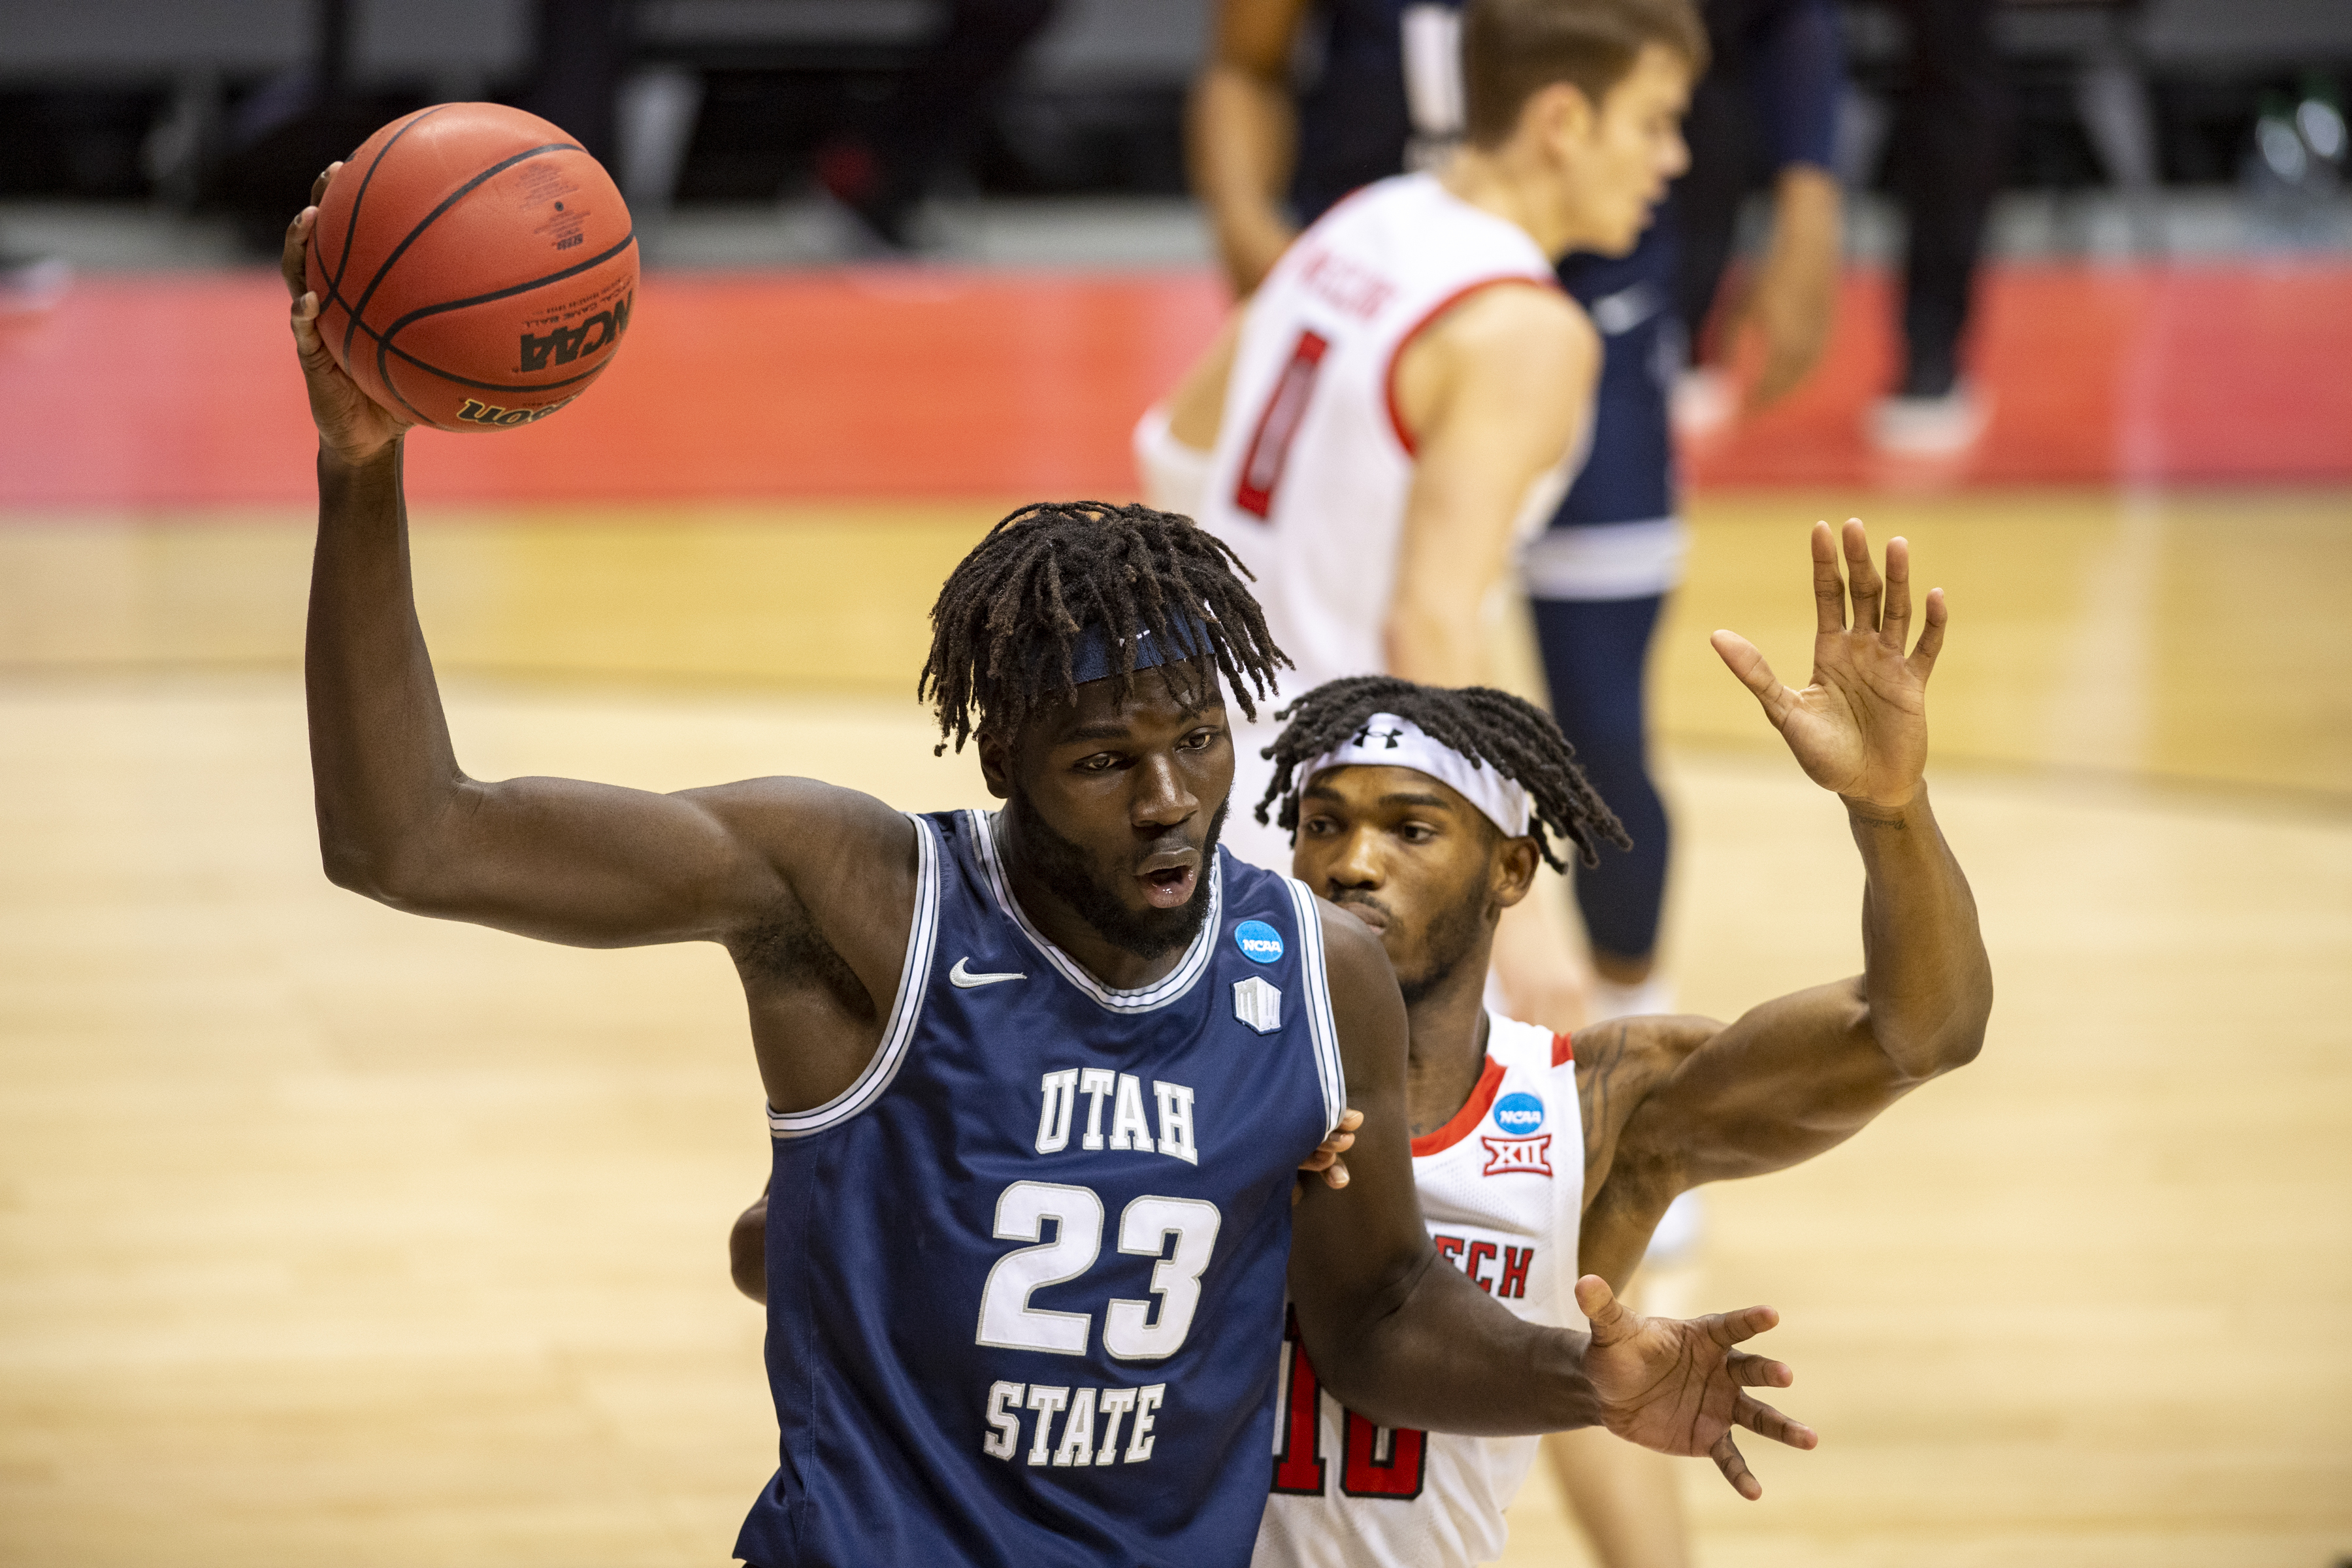 Utah State center Neemias Queta will participate in the NBA Draft Combine this week in Chicago.